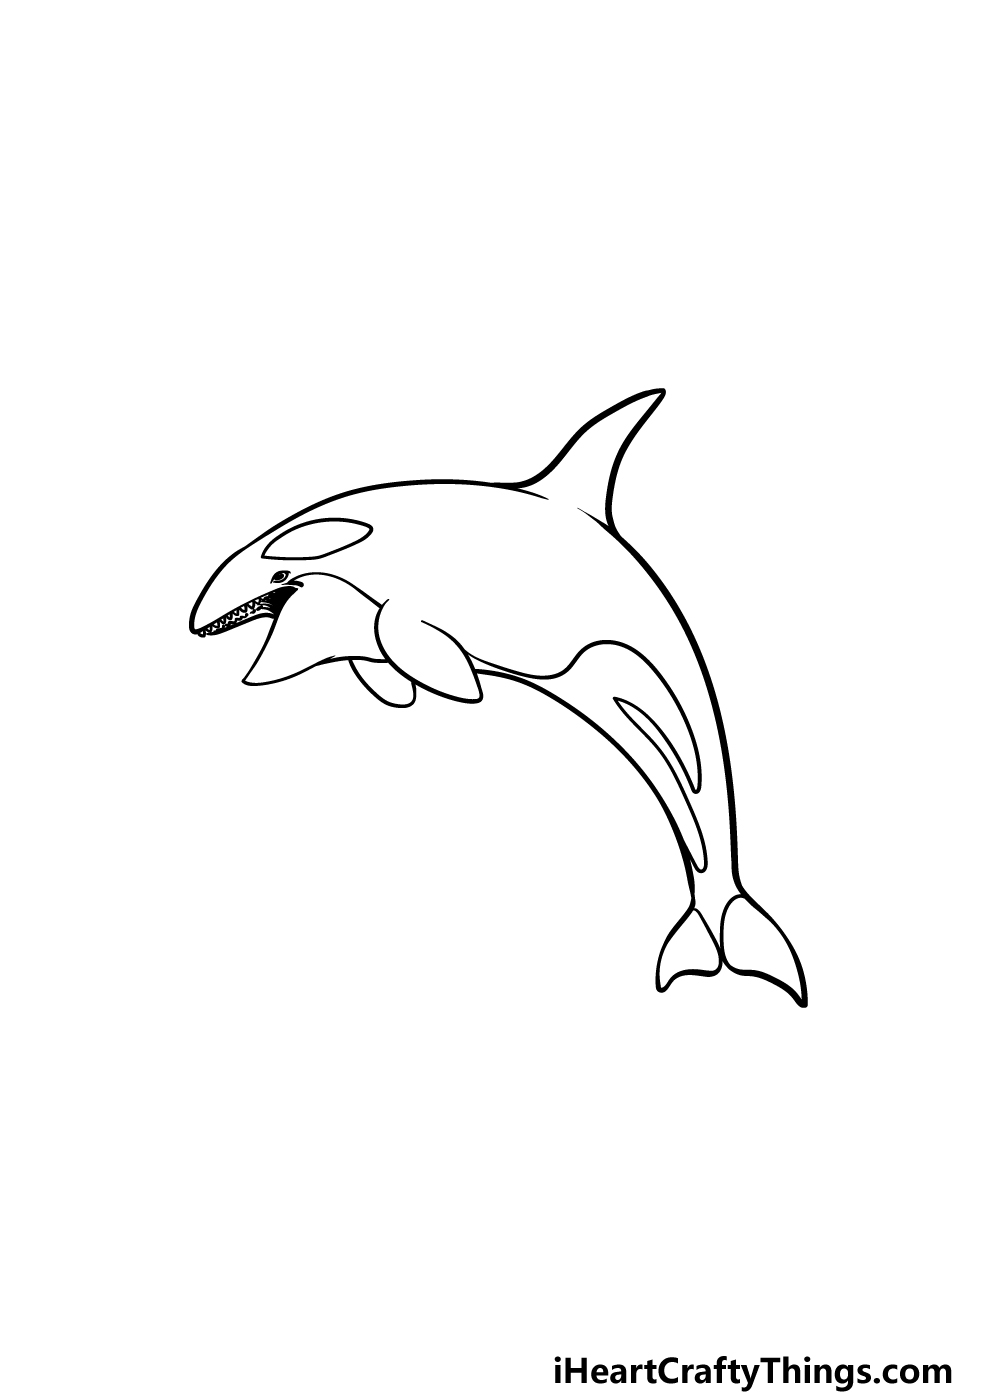 drawing an orca step 5